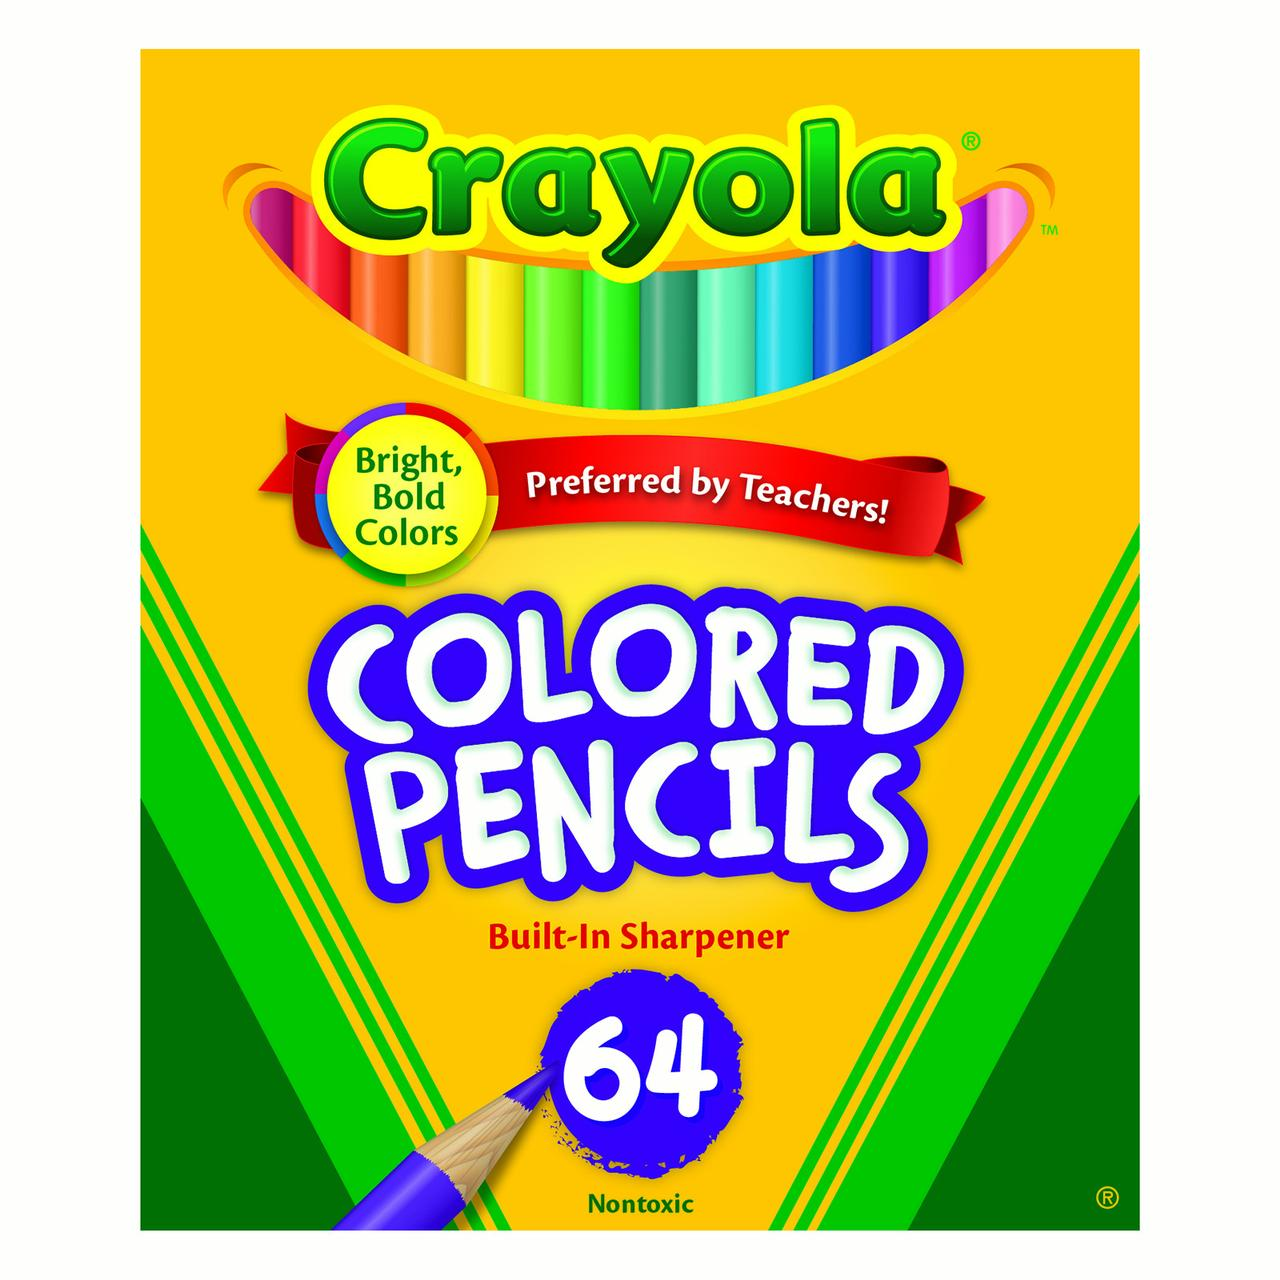 Crayola Mini Colored Pencils in Assorted Colors, 64 Count by Crayola